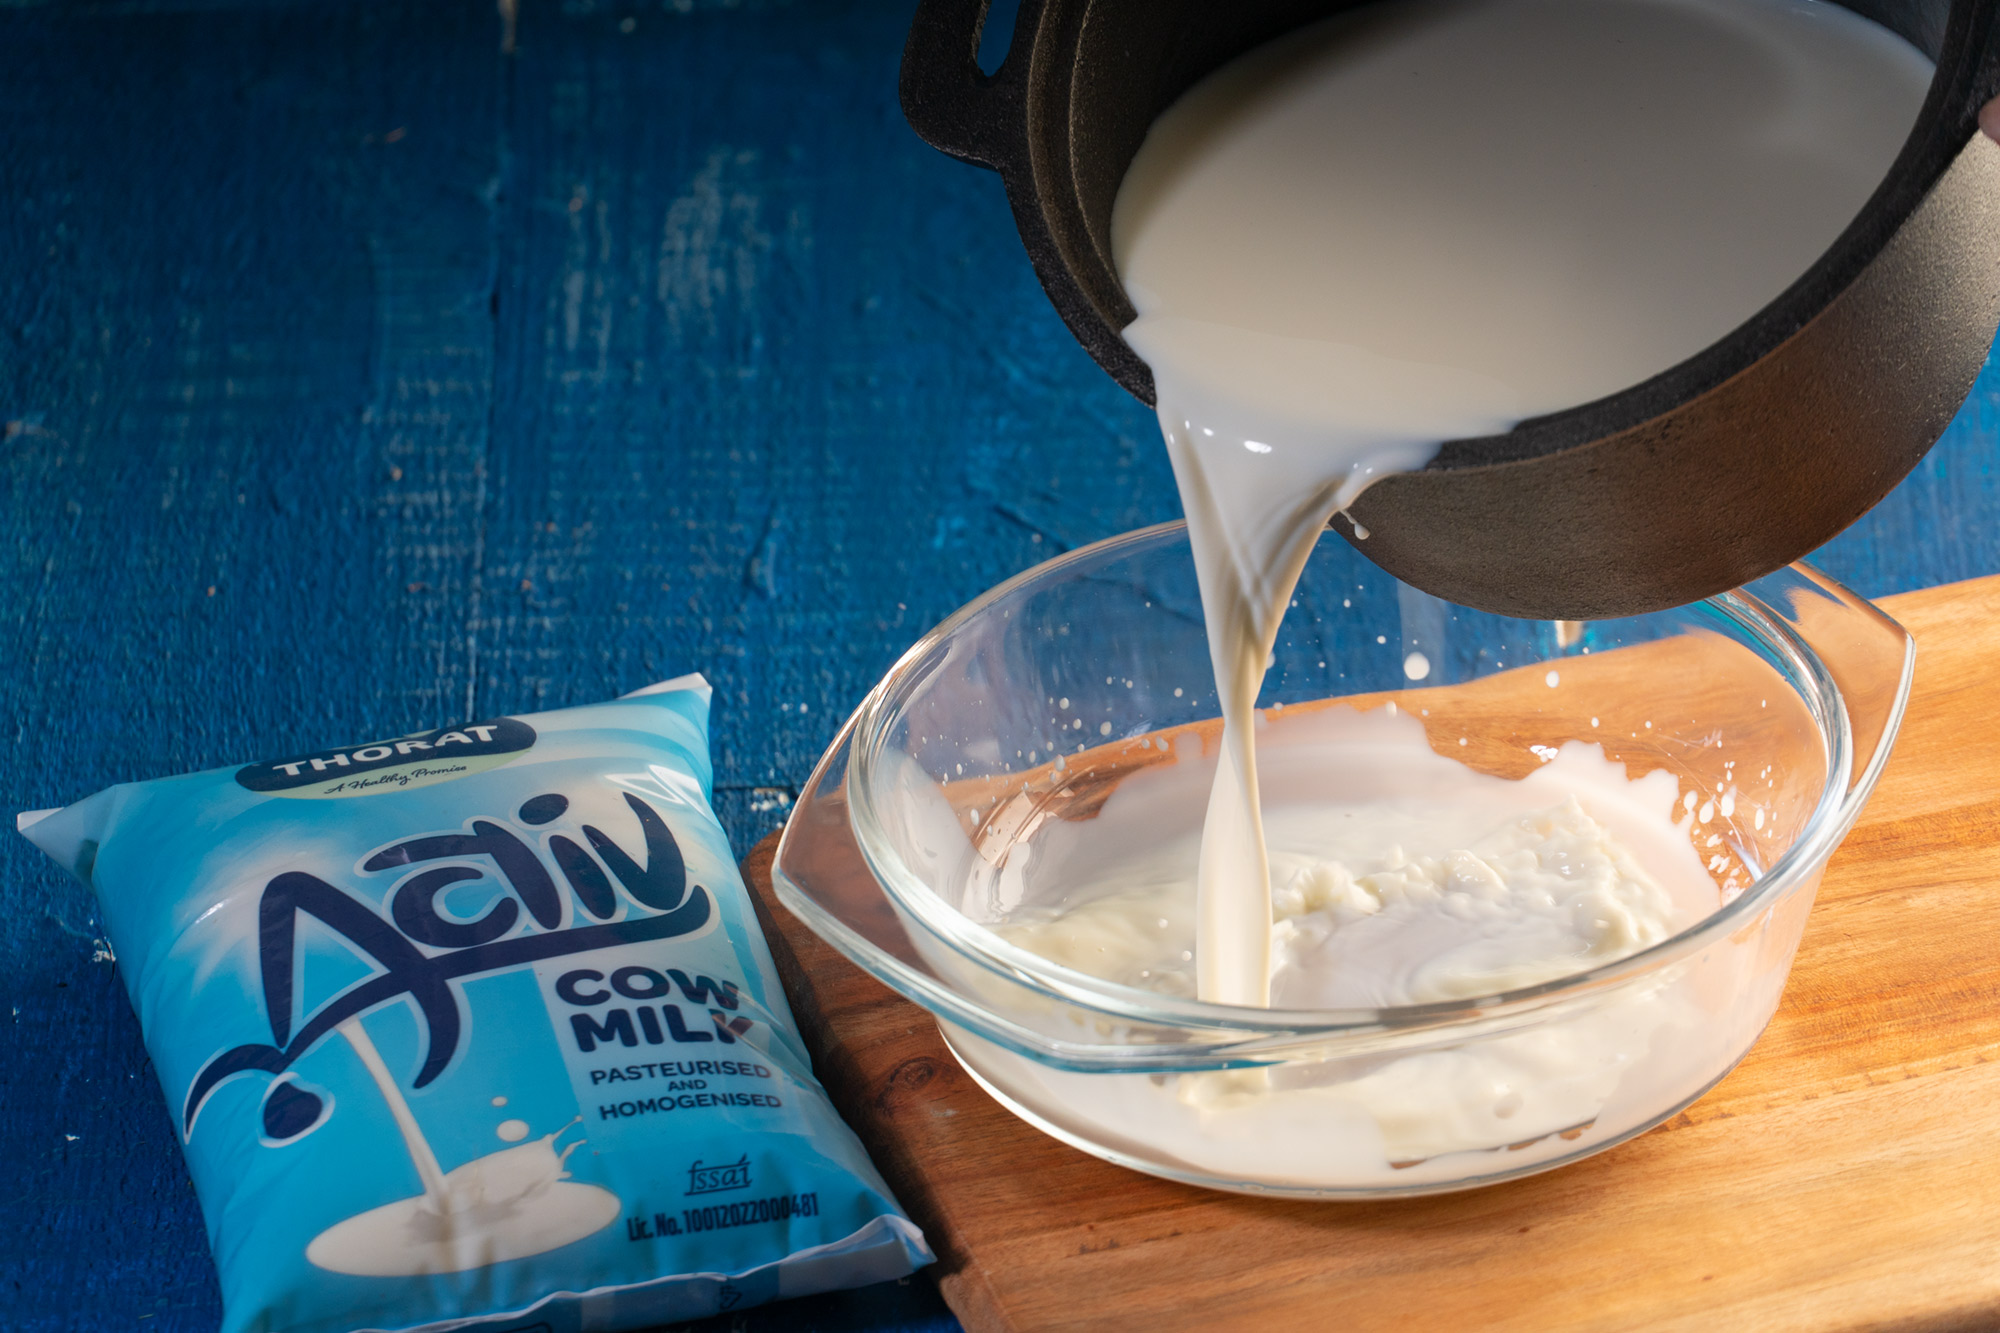 Pour the milk in a bowl